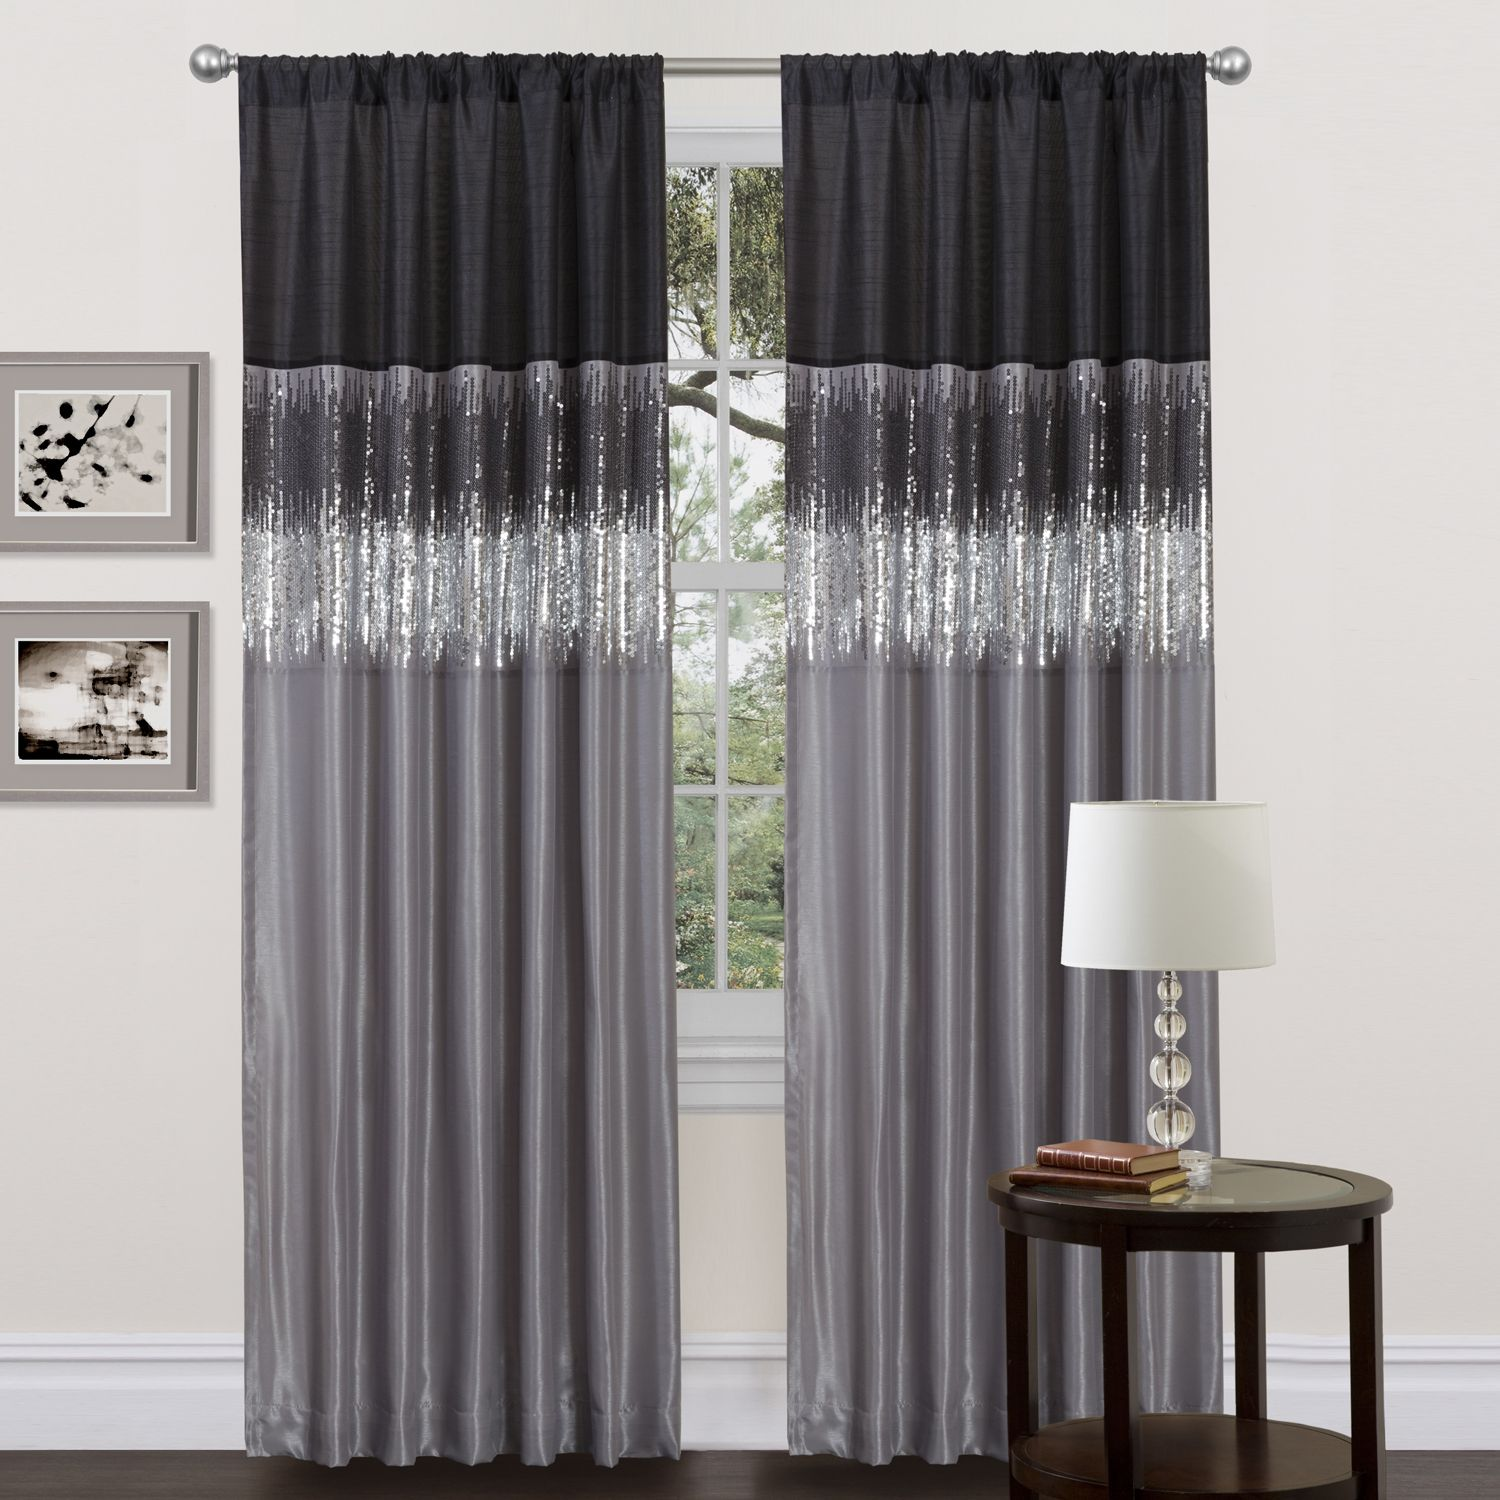 Bypass basic window treatments in favor of this chic 84-inch curtain panel. The black and silver perfectly play off each other and enhance the sequins, which give your room some sparkle. It also has rod pockets to allow for hanging on either end.